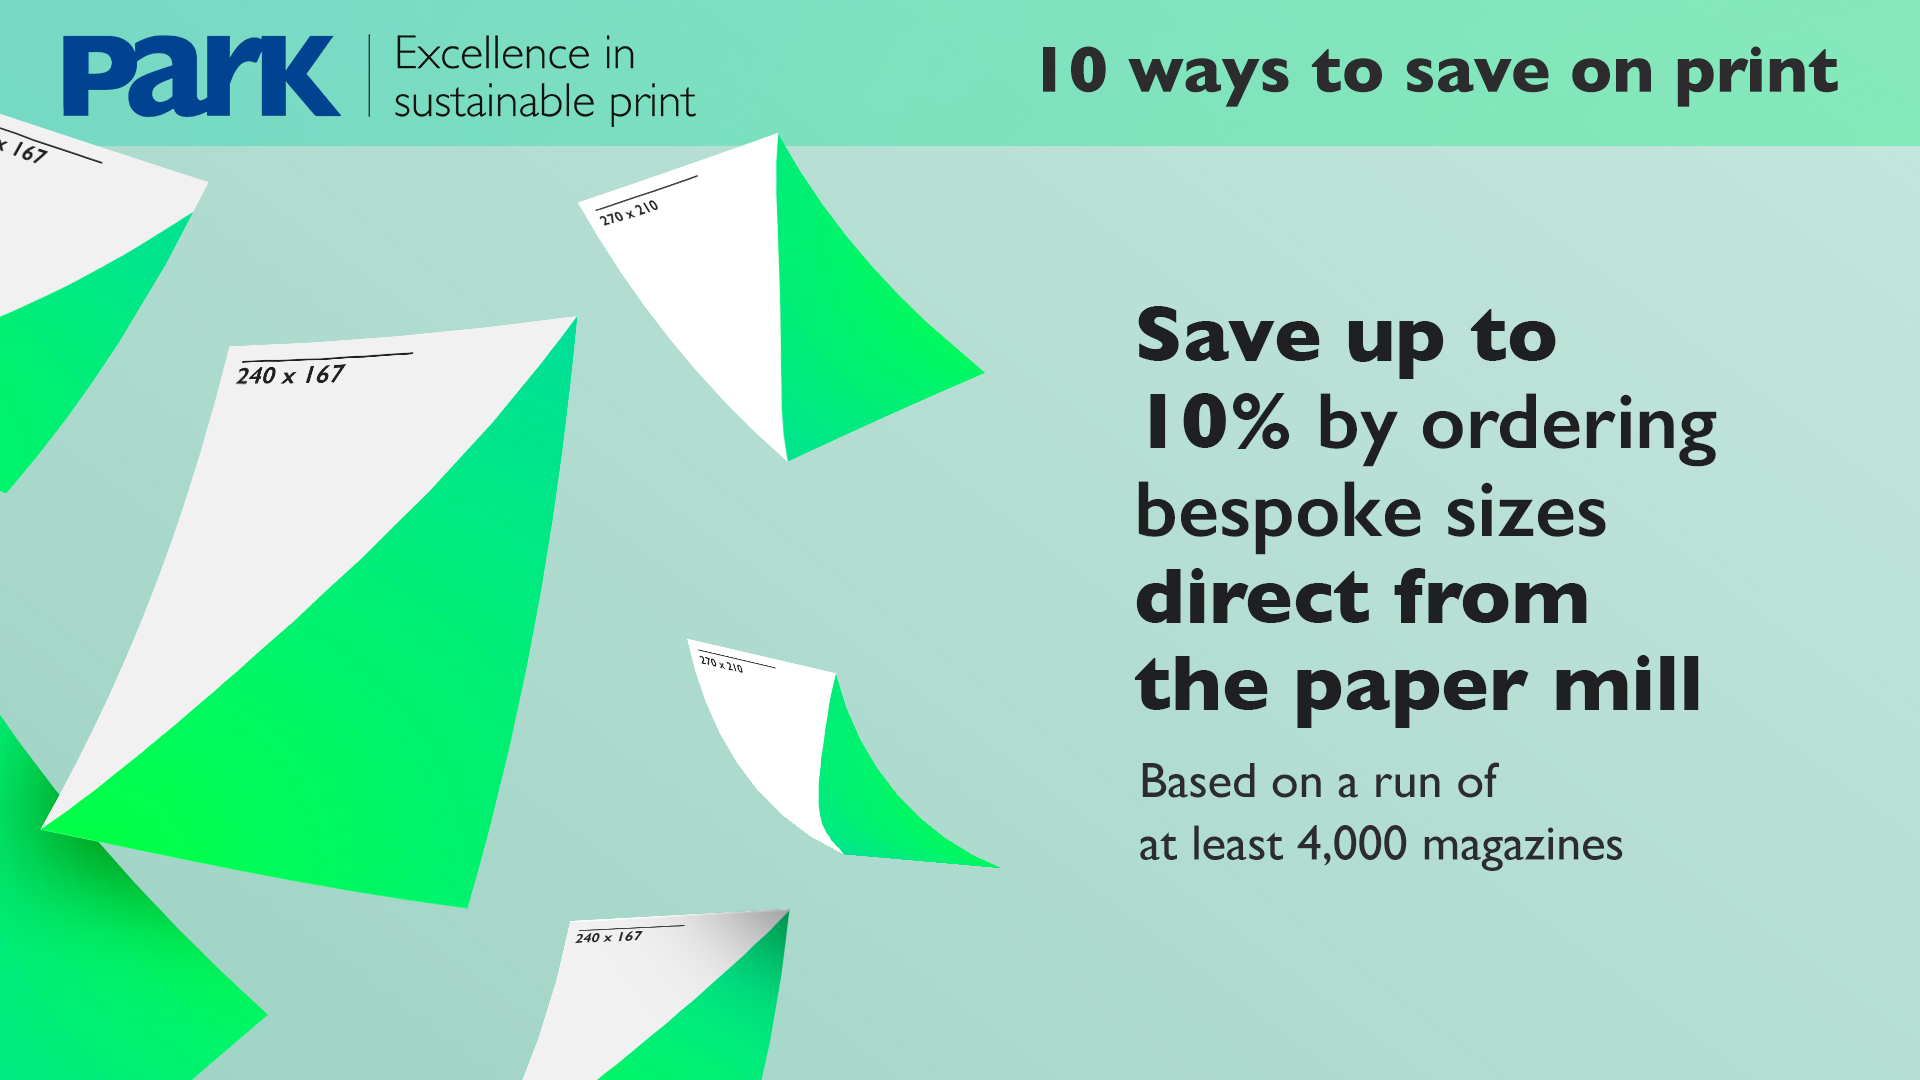 order bespoke paper sizes to reduce print costs